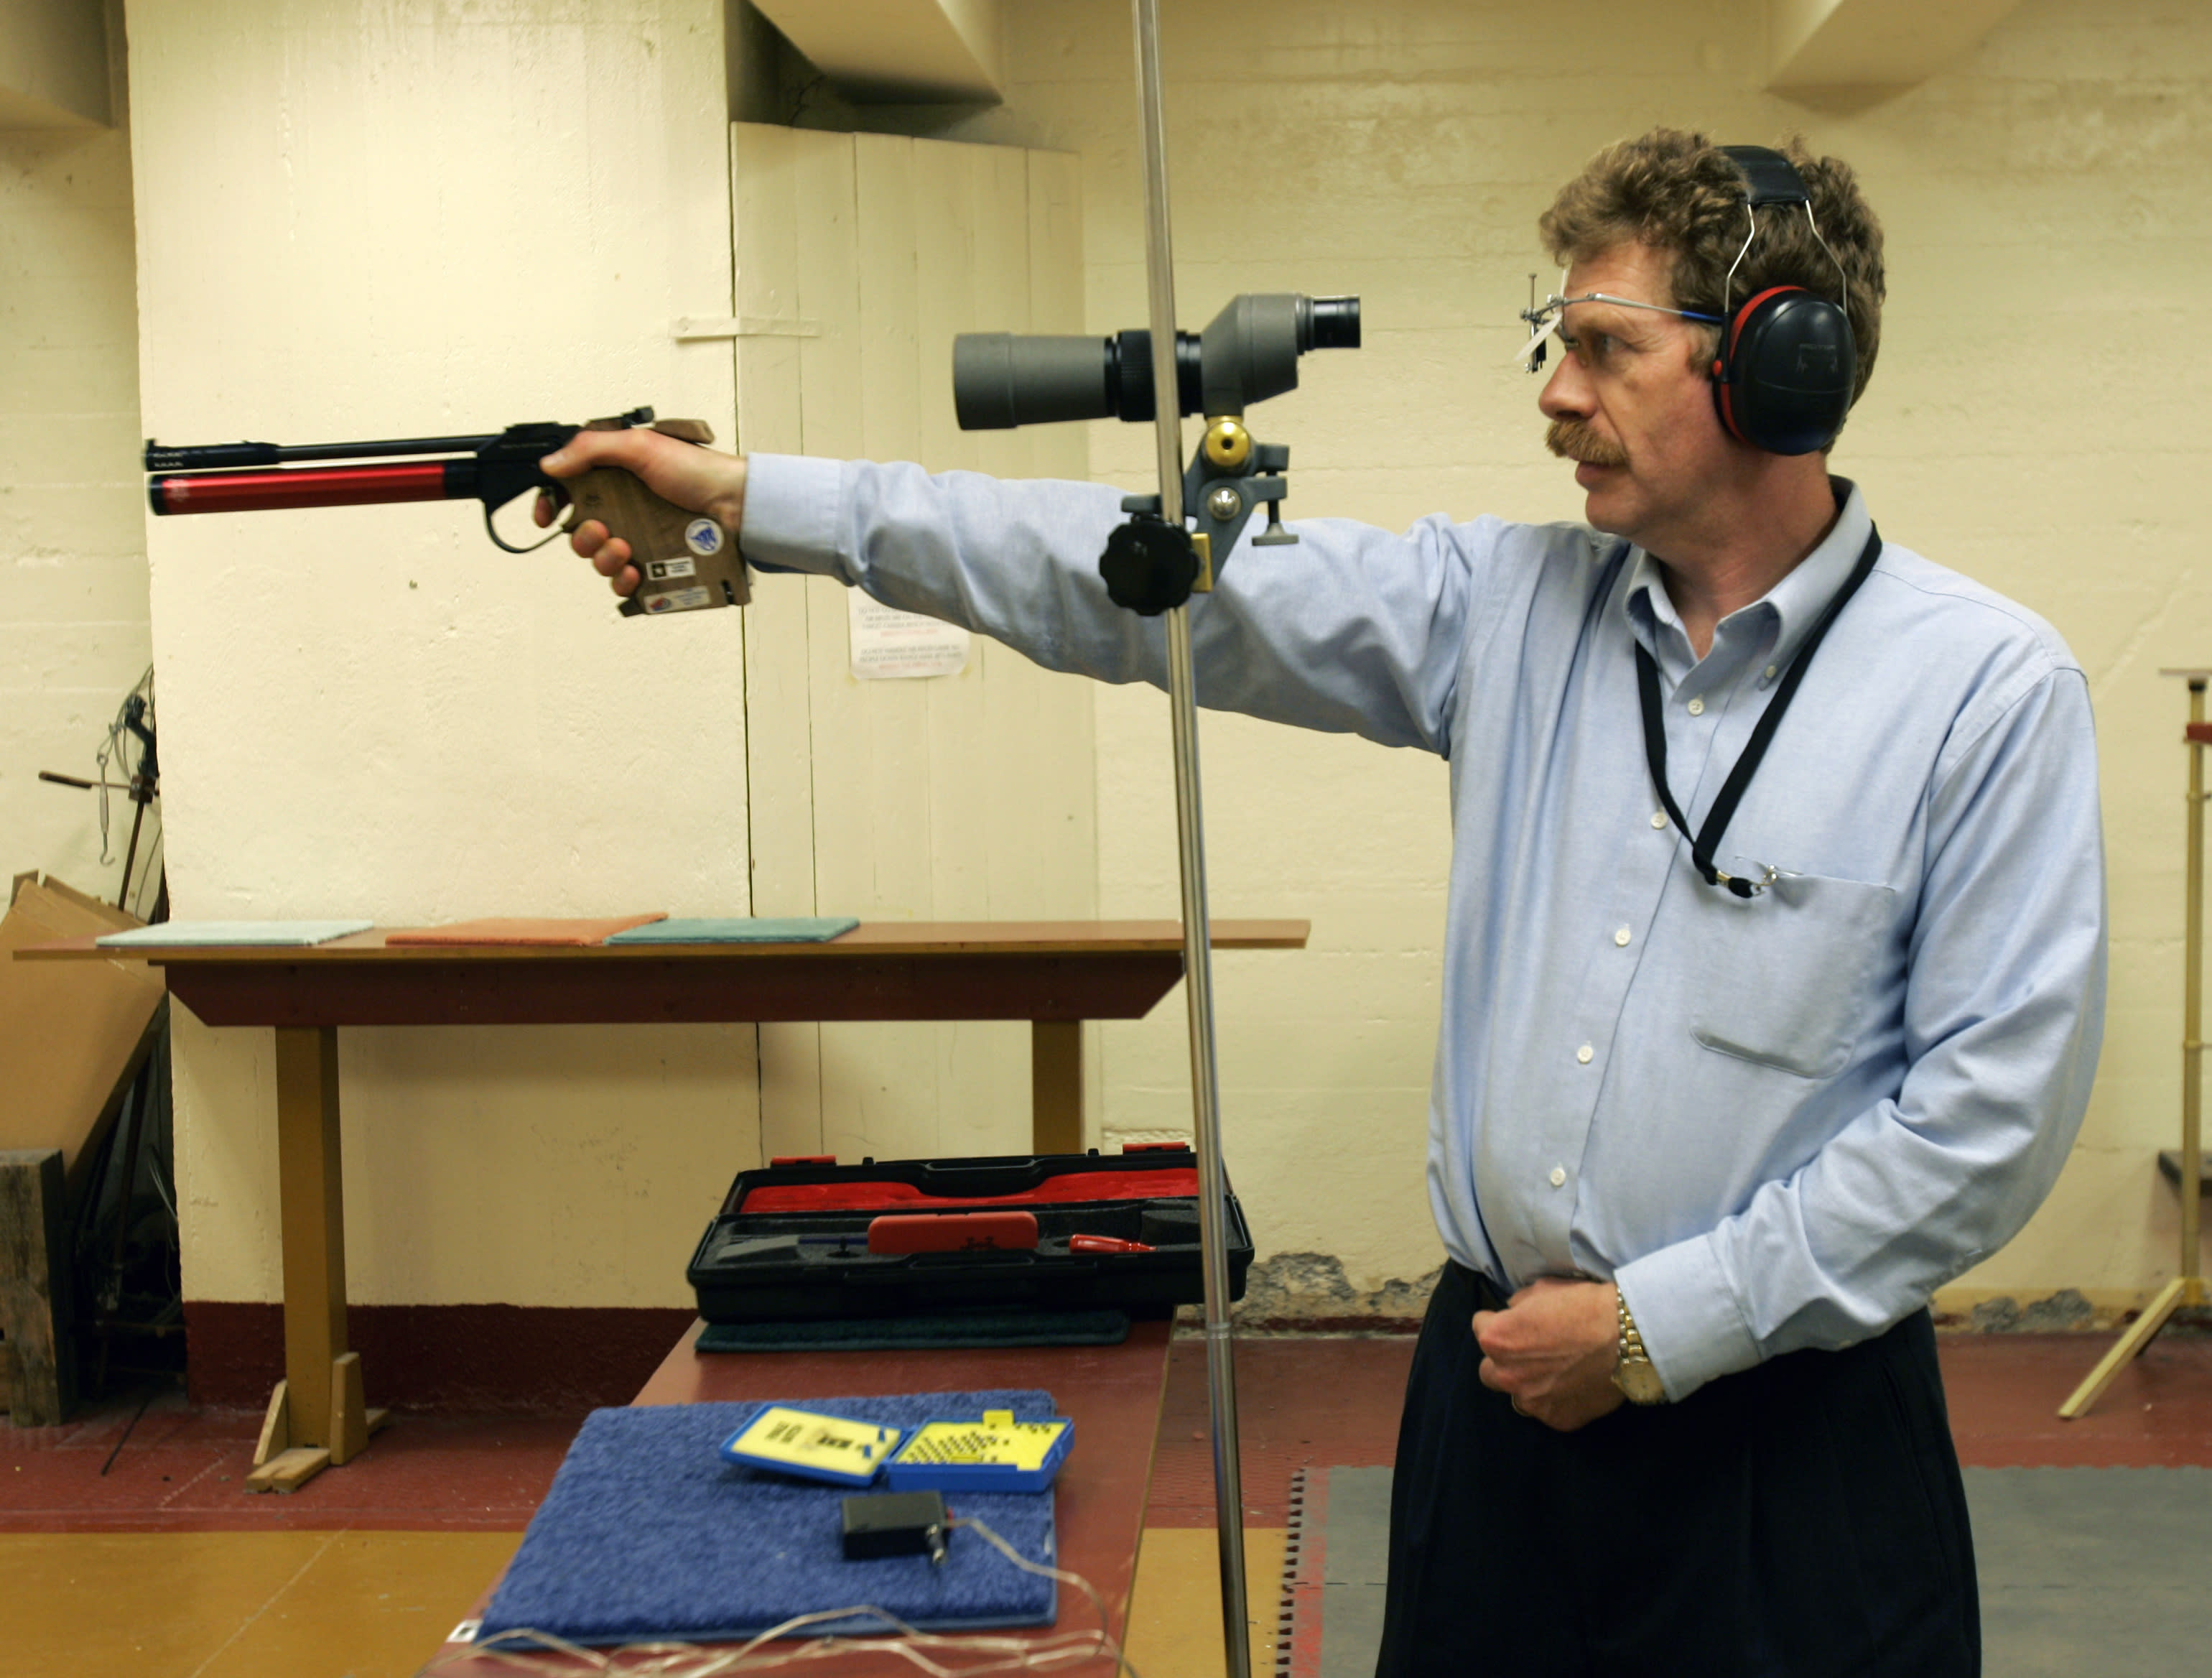 FILE--In this Feb. 21, 2007 file photo, Bruce Martindale takes aim as he competes in a weekly air gun league in Troy, N.Y. Martindale, who normally uses a .22-caliber, has cut back on practice because ammunition is in short supply. (AP Photo/Mike Groll, File)